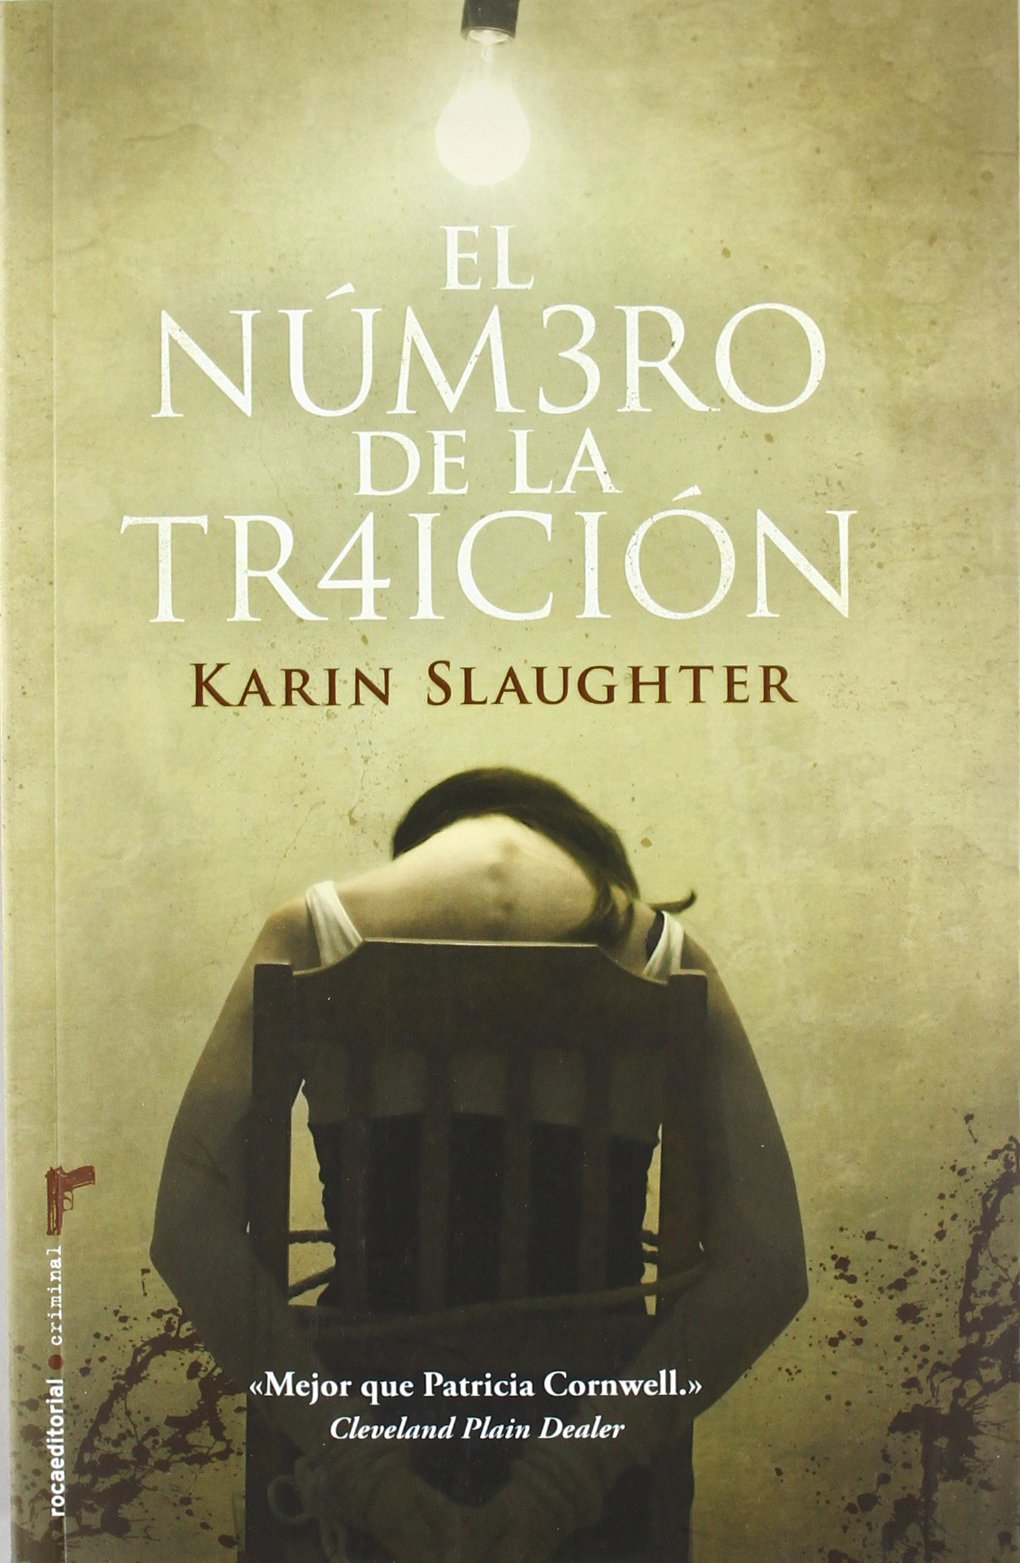 Download El numero de la traicion (Spanish Edition) ebook